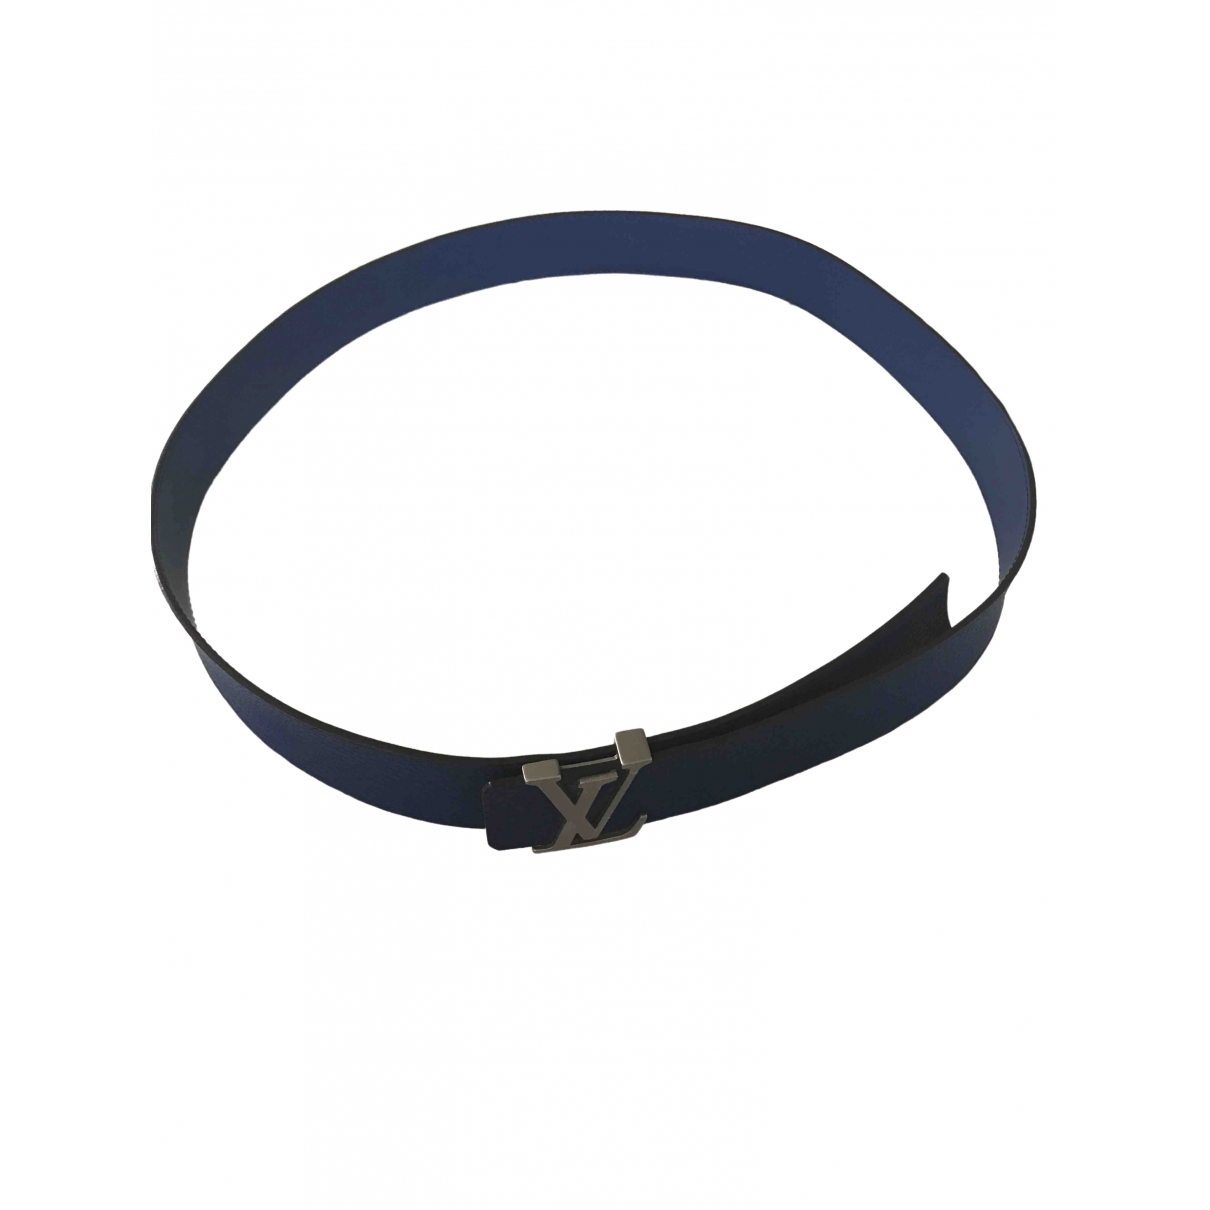 Louis Vuitton \N Blue Leather belt for Men 39 Inches